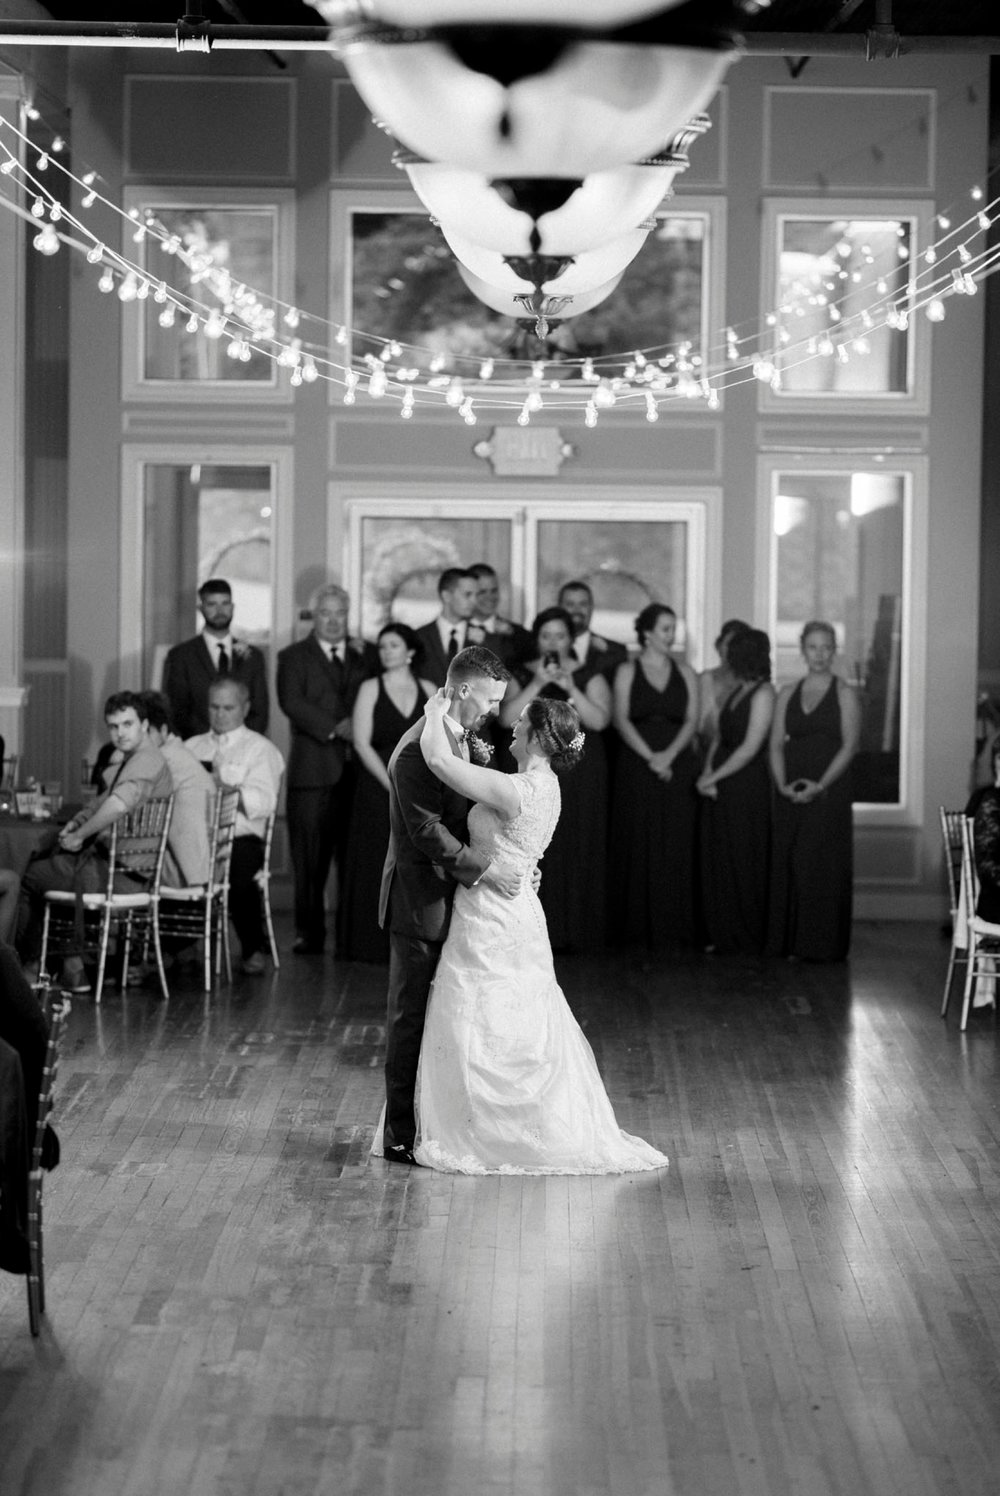 Trescaon8th_DowntownLynchburg_Virginiaweddingphotographer 87.jpg